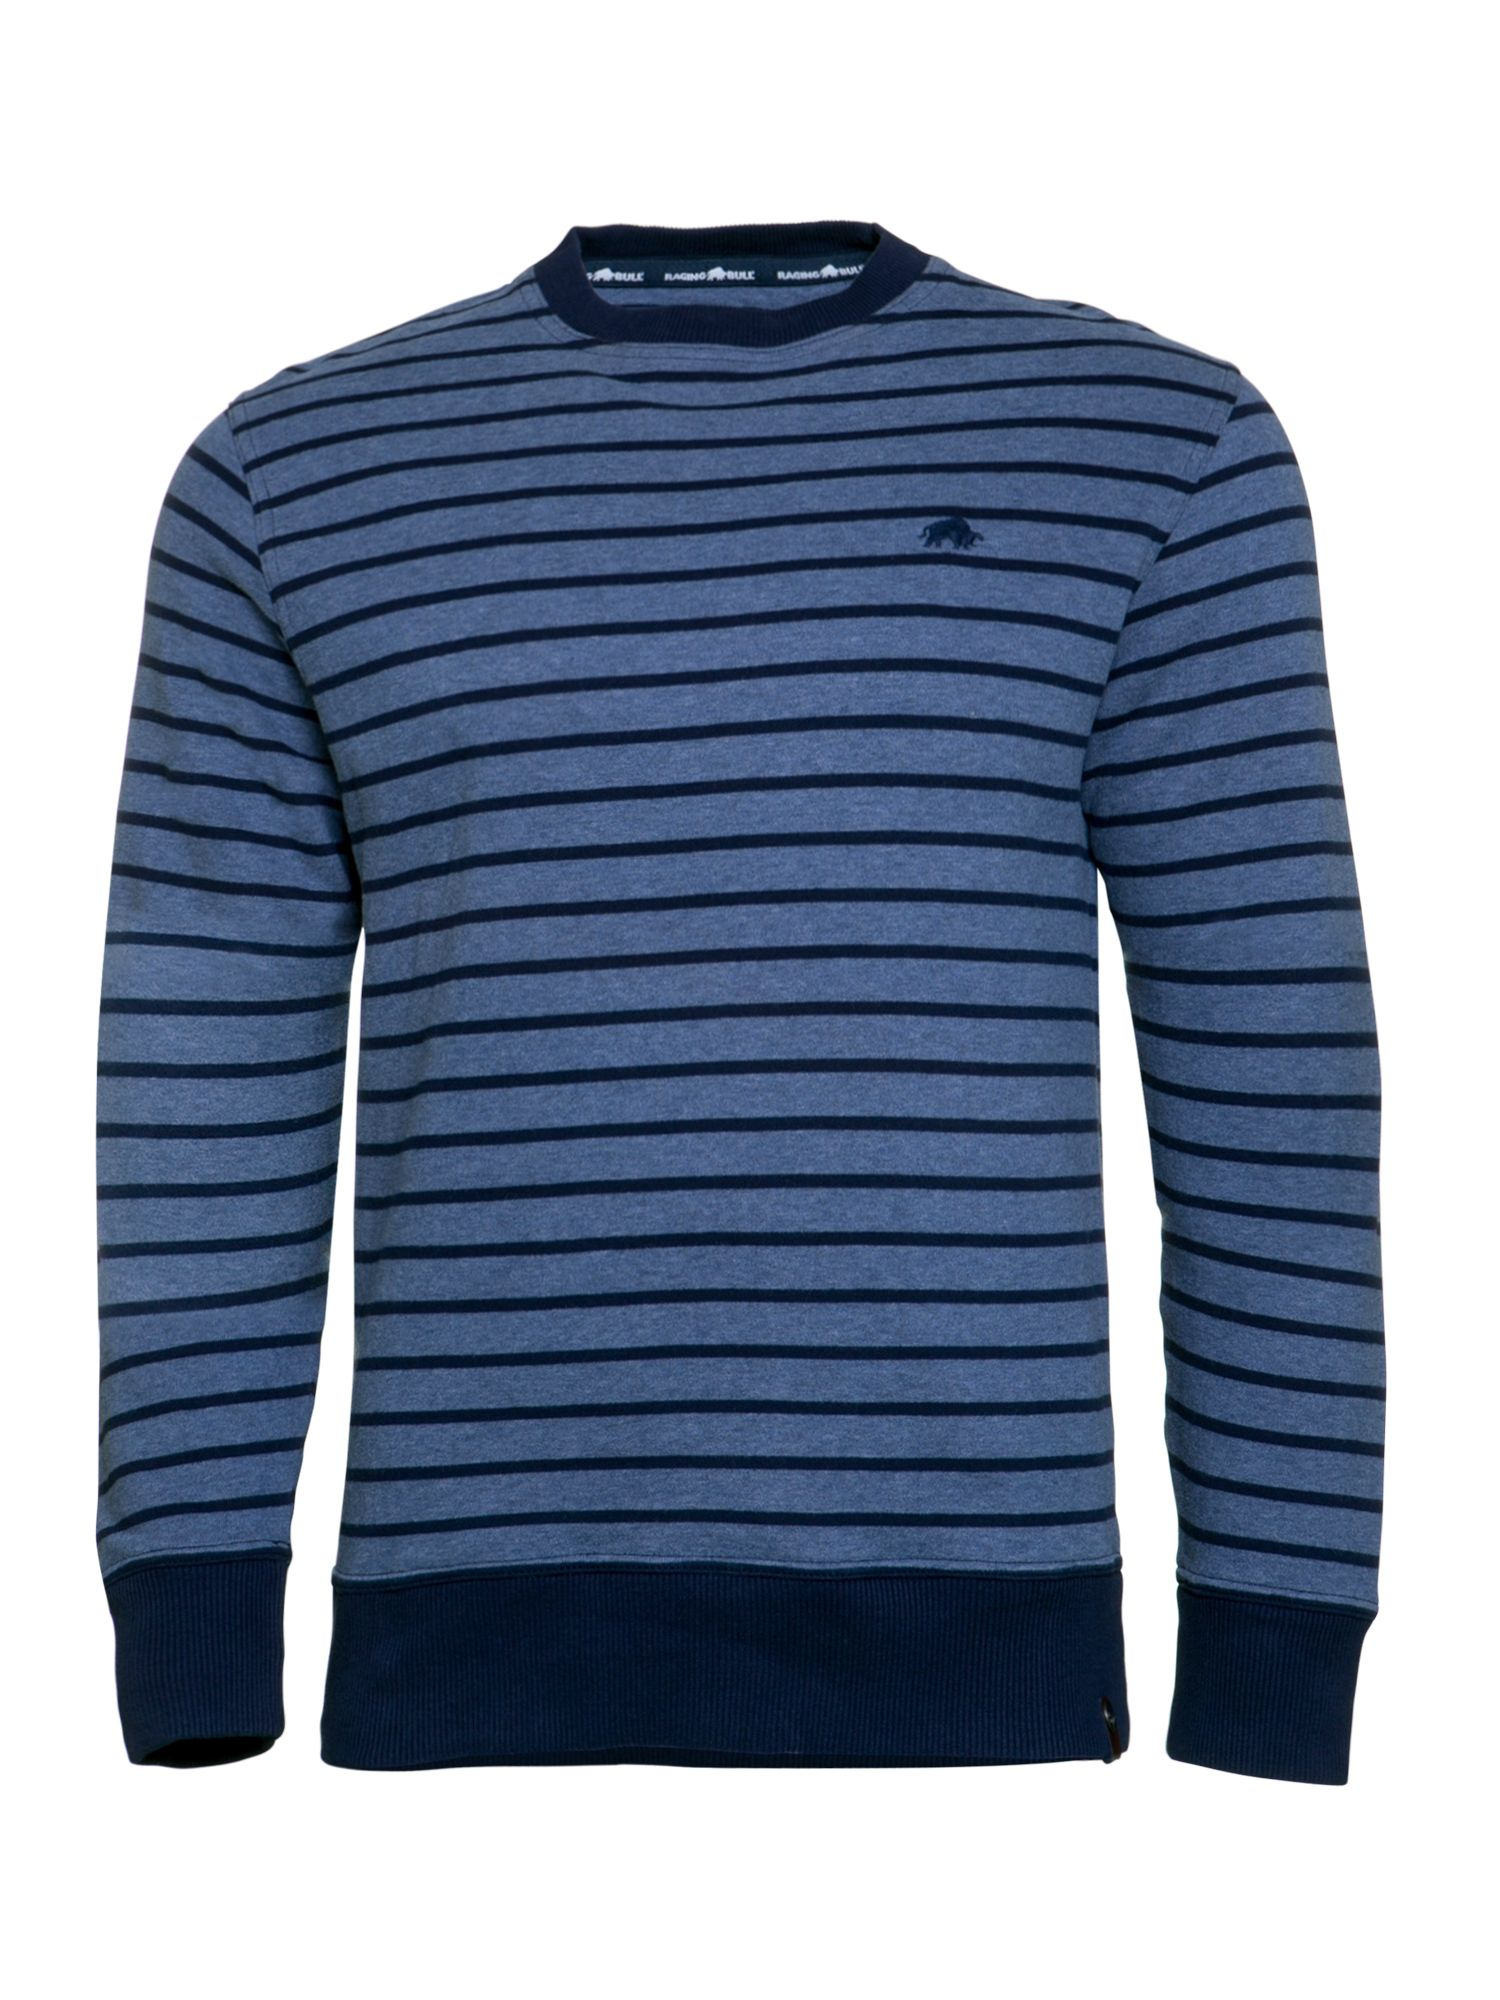 Men's Raging Bull Stripe Crew Sweater, Blue